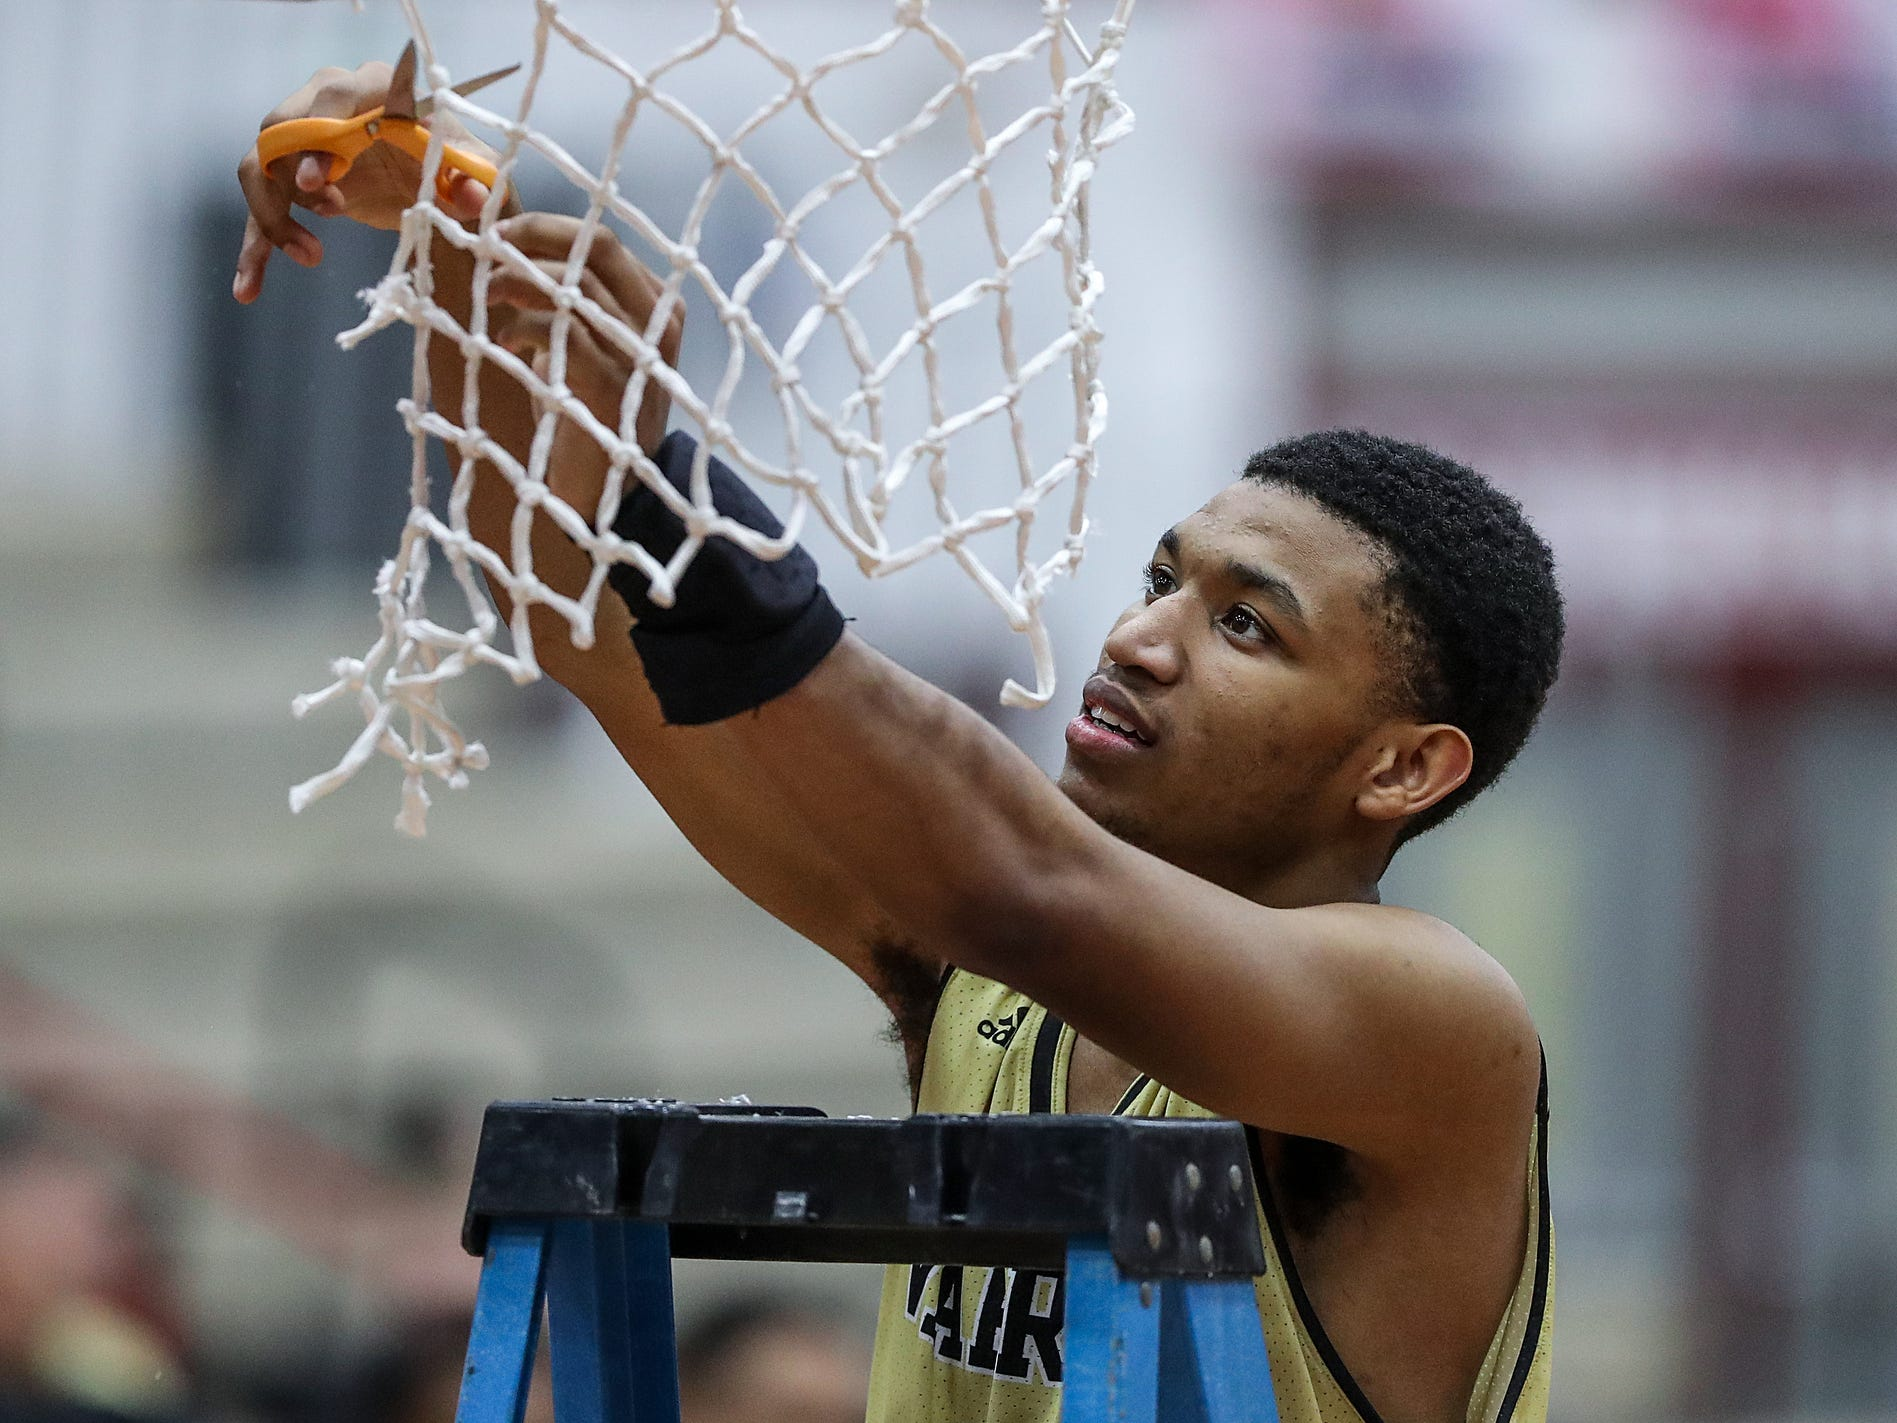 Warren Central Warriors guard Isiah Moore (20) cuts down a piece of the net after the Warriors won the Marion County tournament title at Southport High School in Indianapolis, Monday, Jan. 14, 2019. The victory marks a 46-game winning streak for the Warriors, the third-longest in state history.